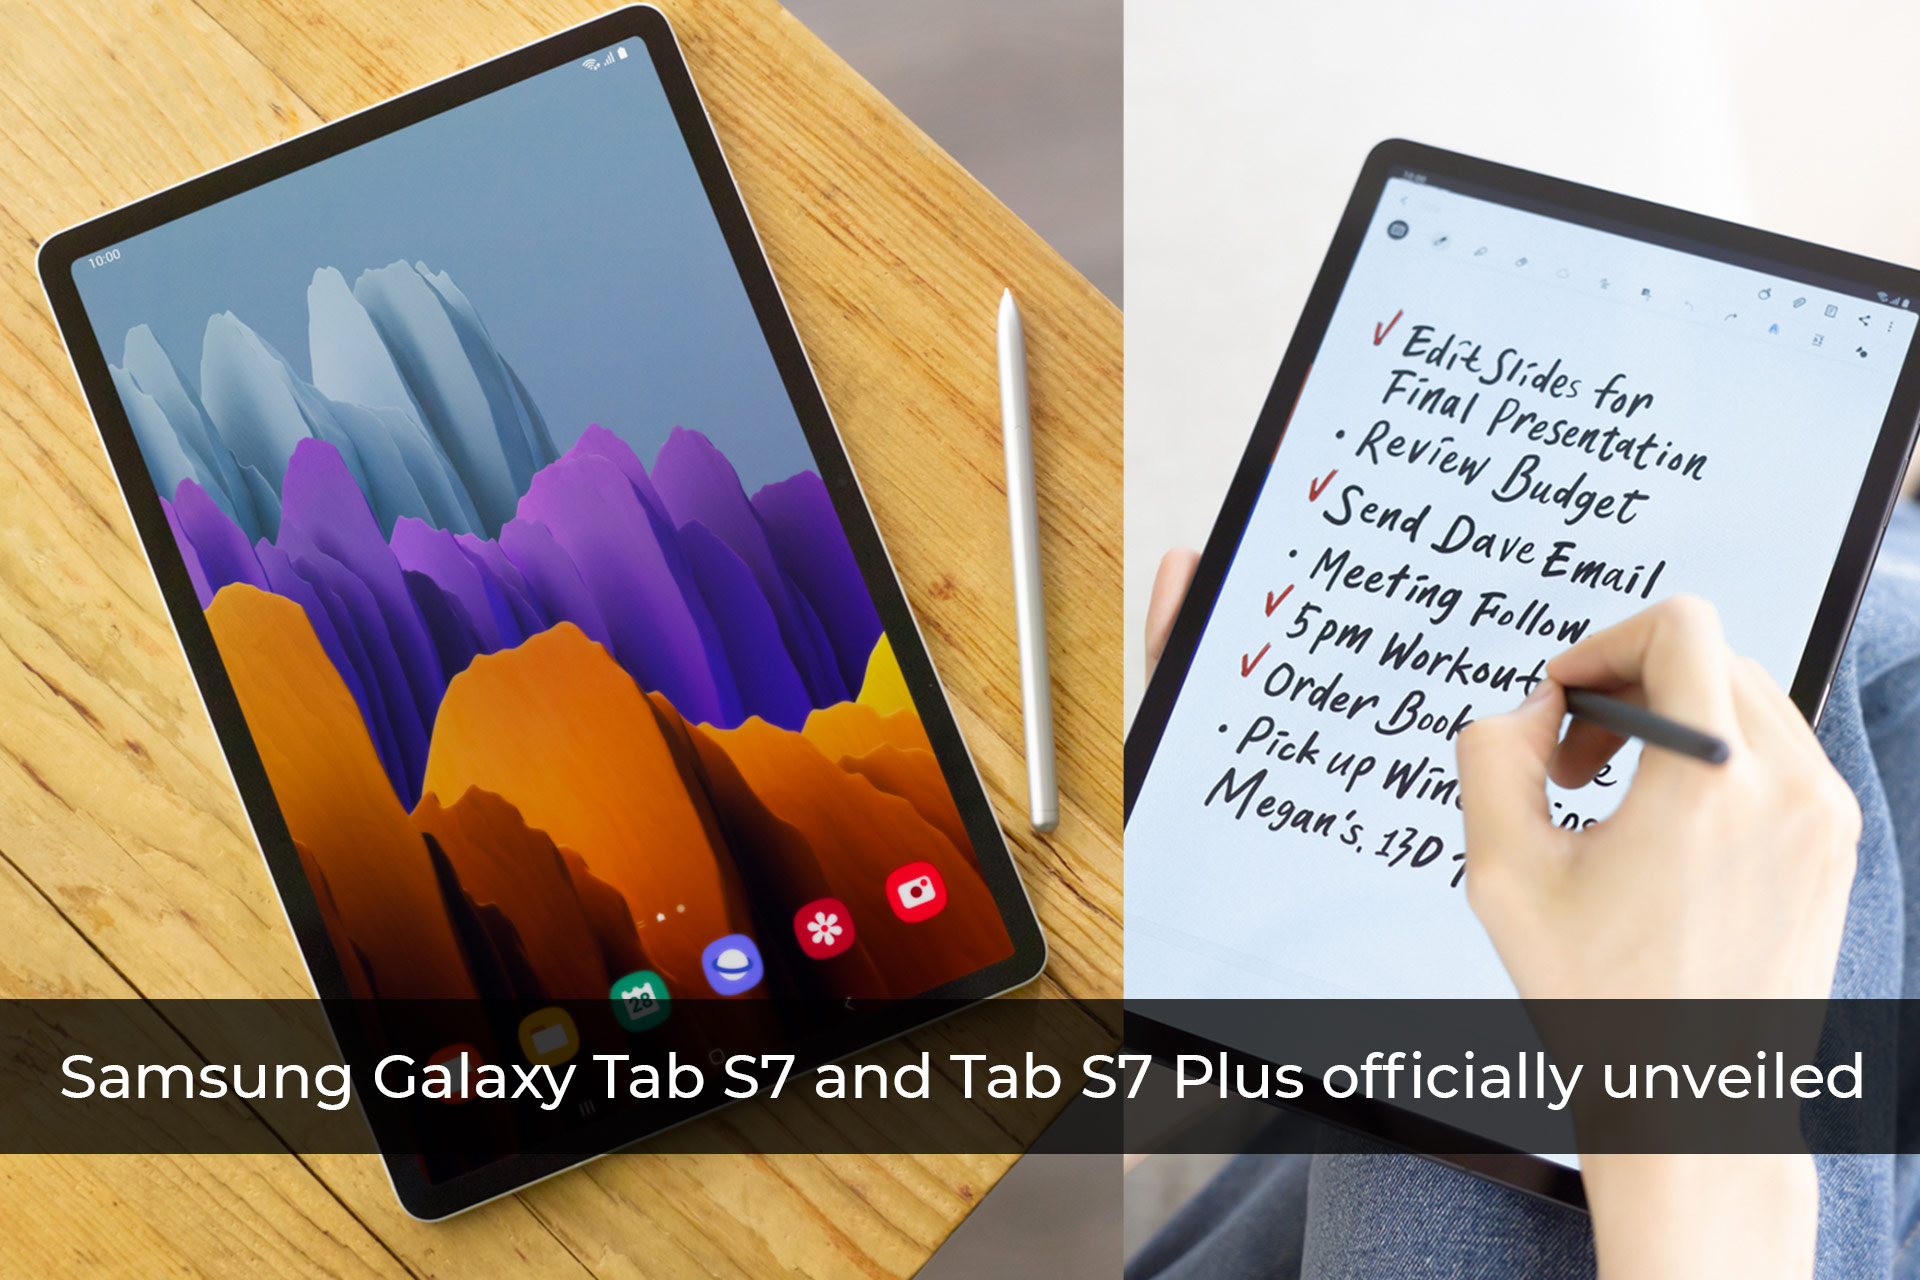 Samsung Galaxy Tab S7 and Tab S7 Plus officially unveiled